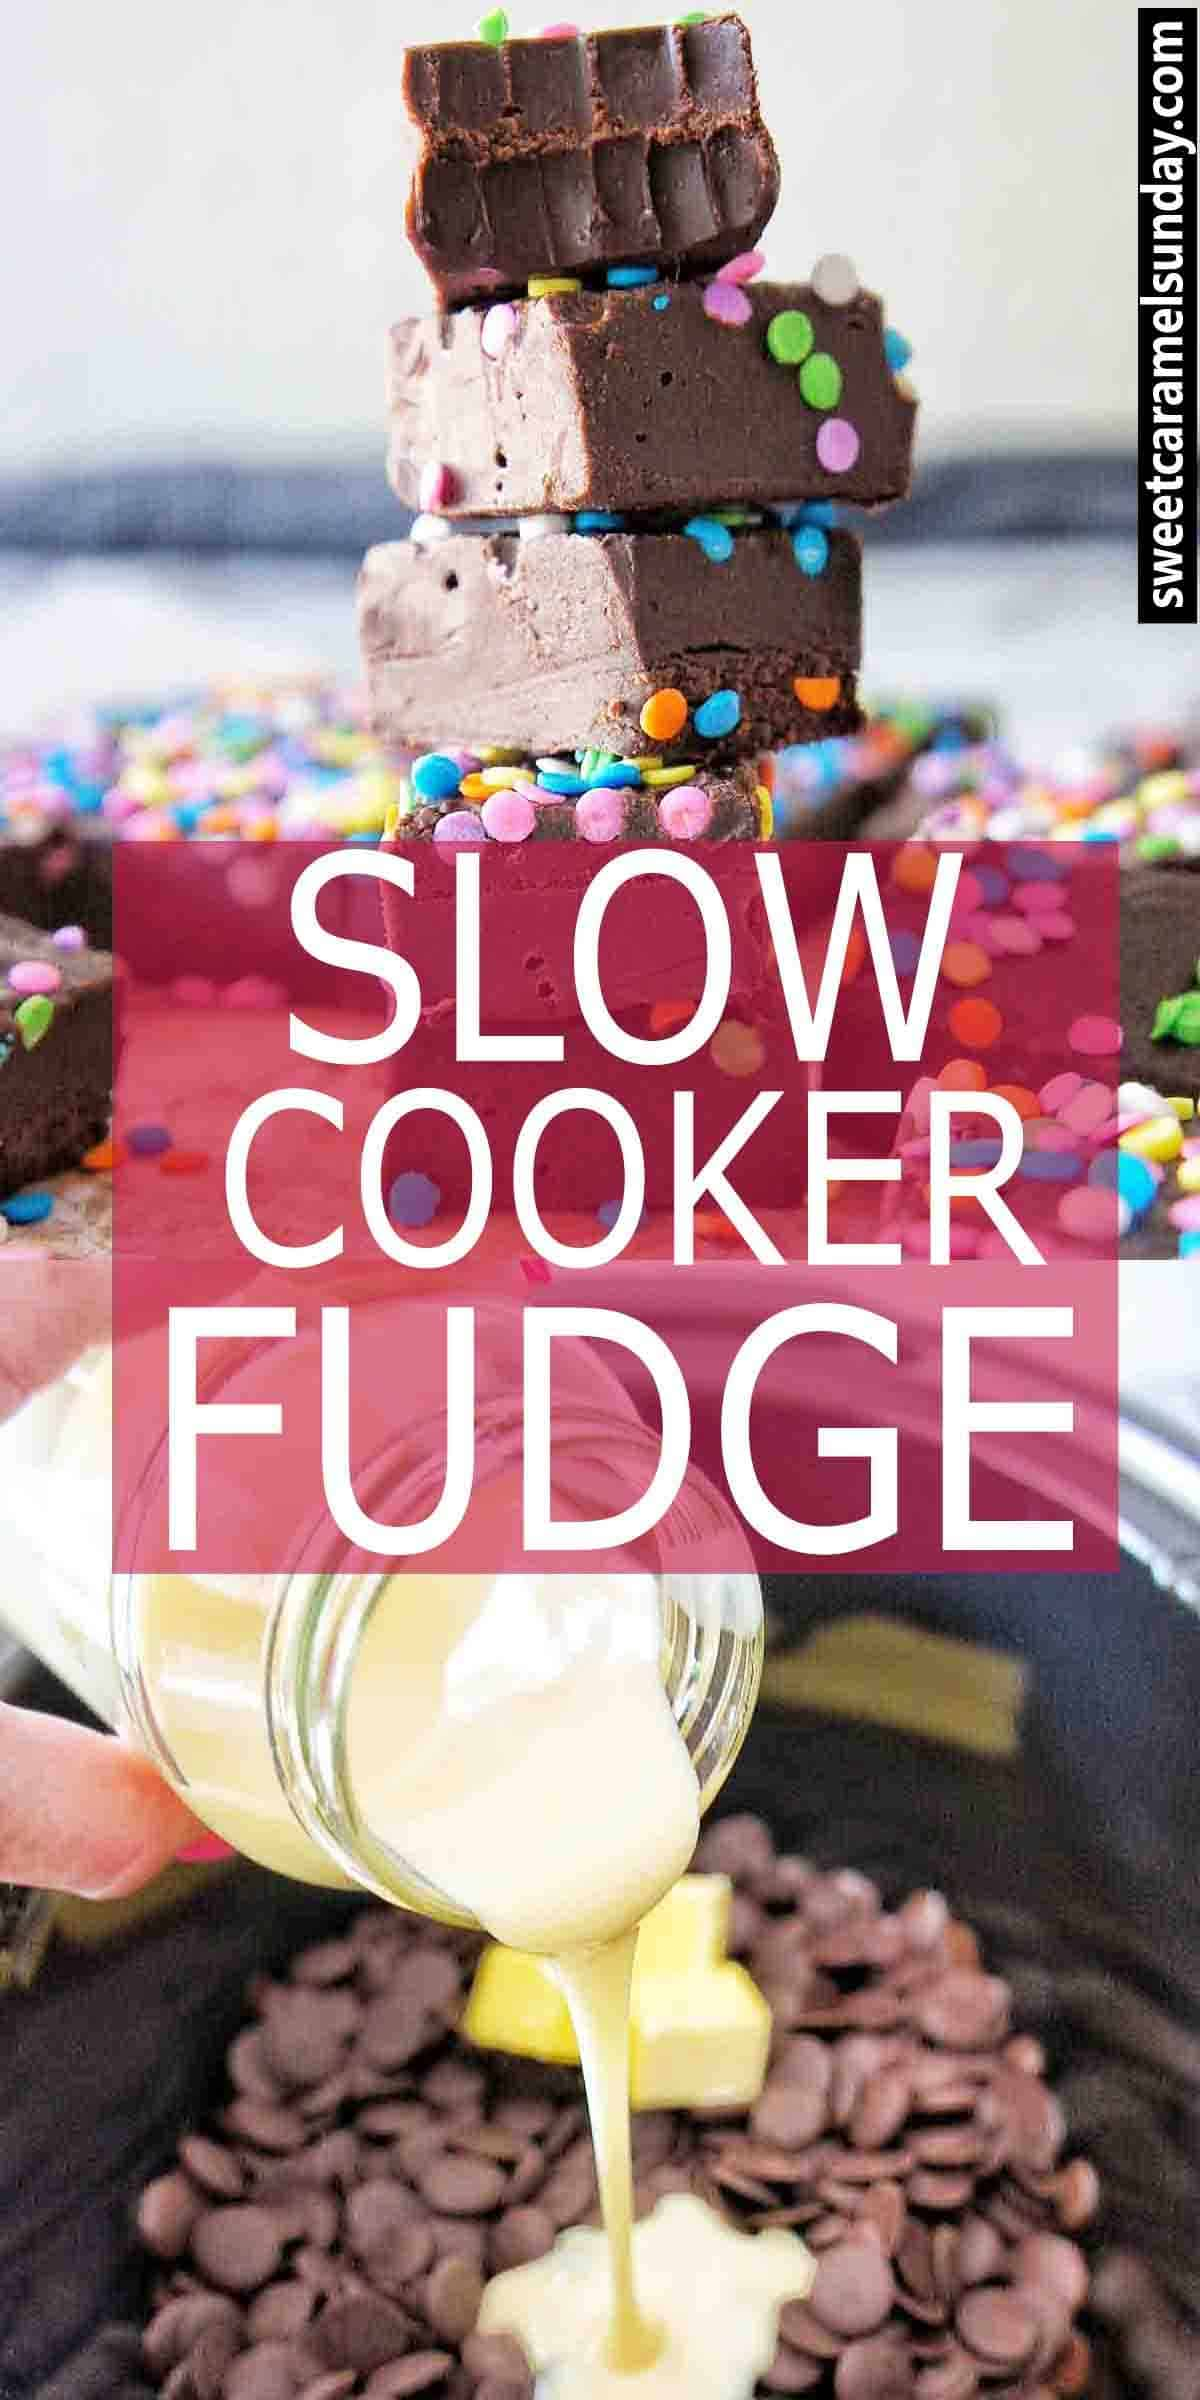 Slow Cooker Fudge with text overlay